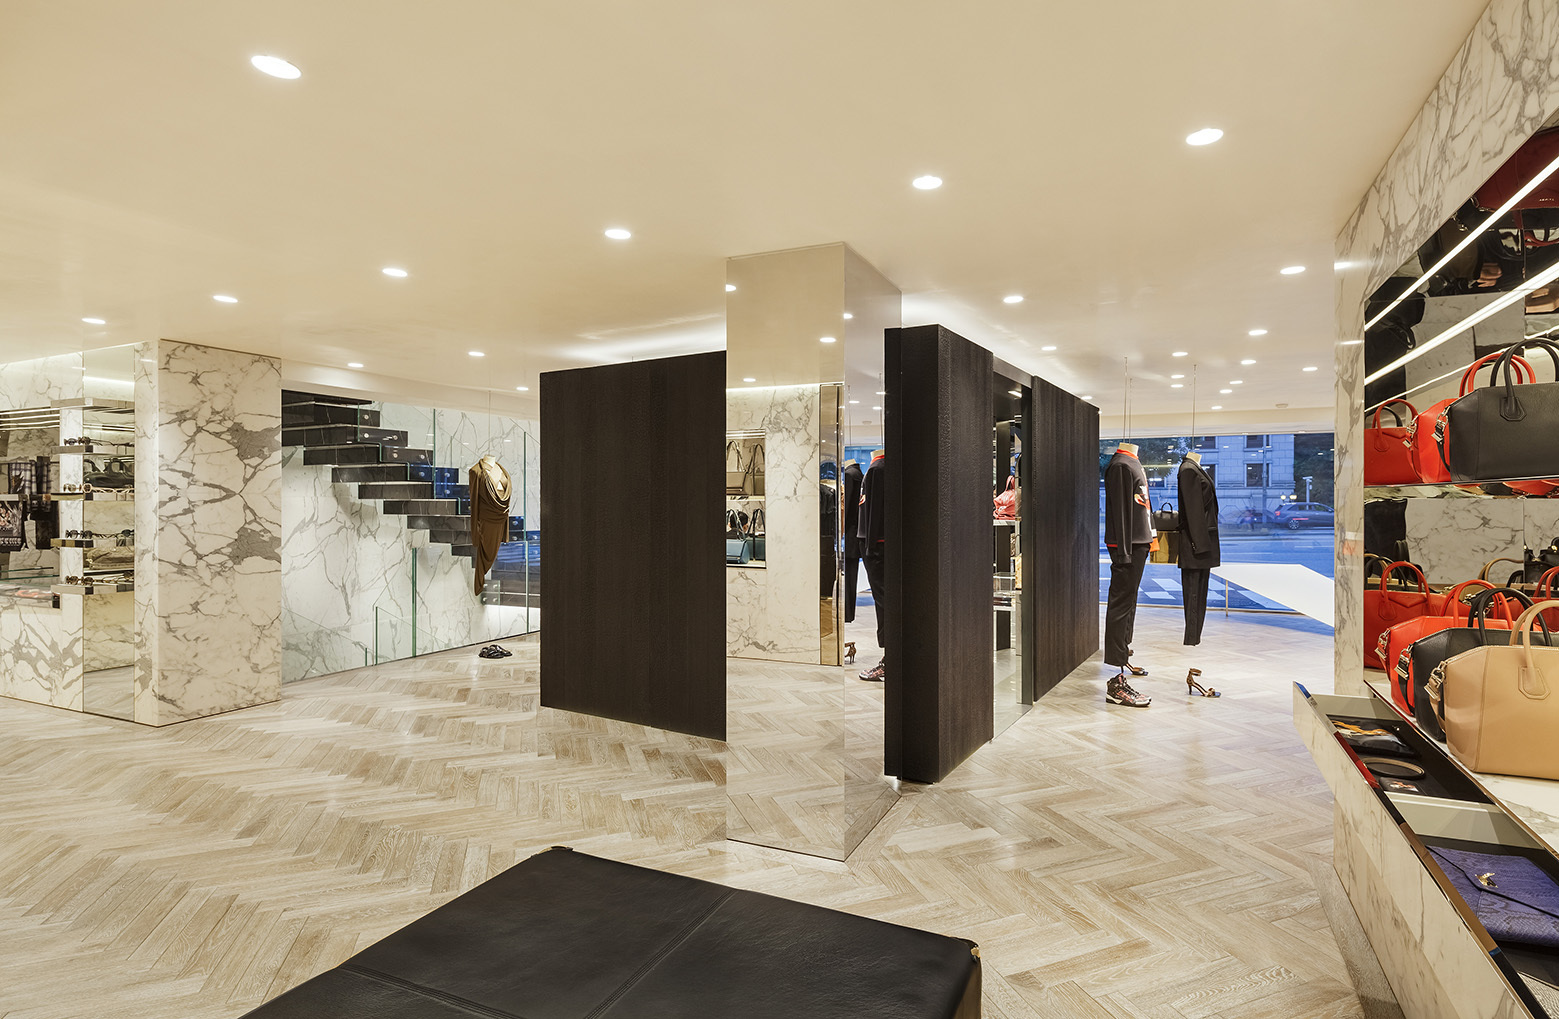 givenchy-flagship-store-in-seoul-piuarch-03